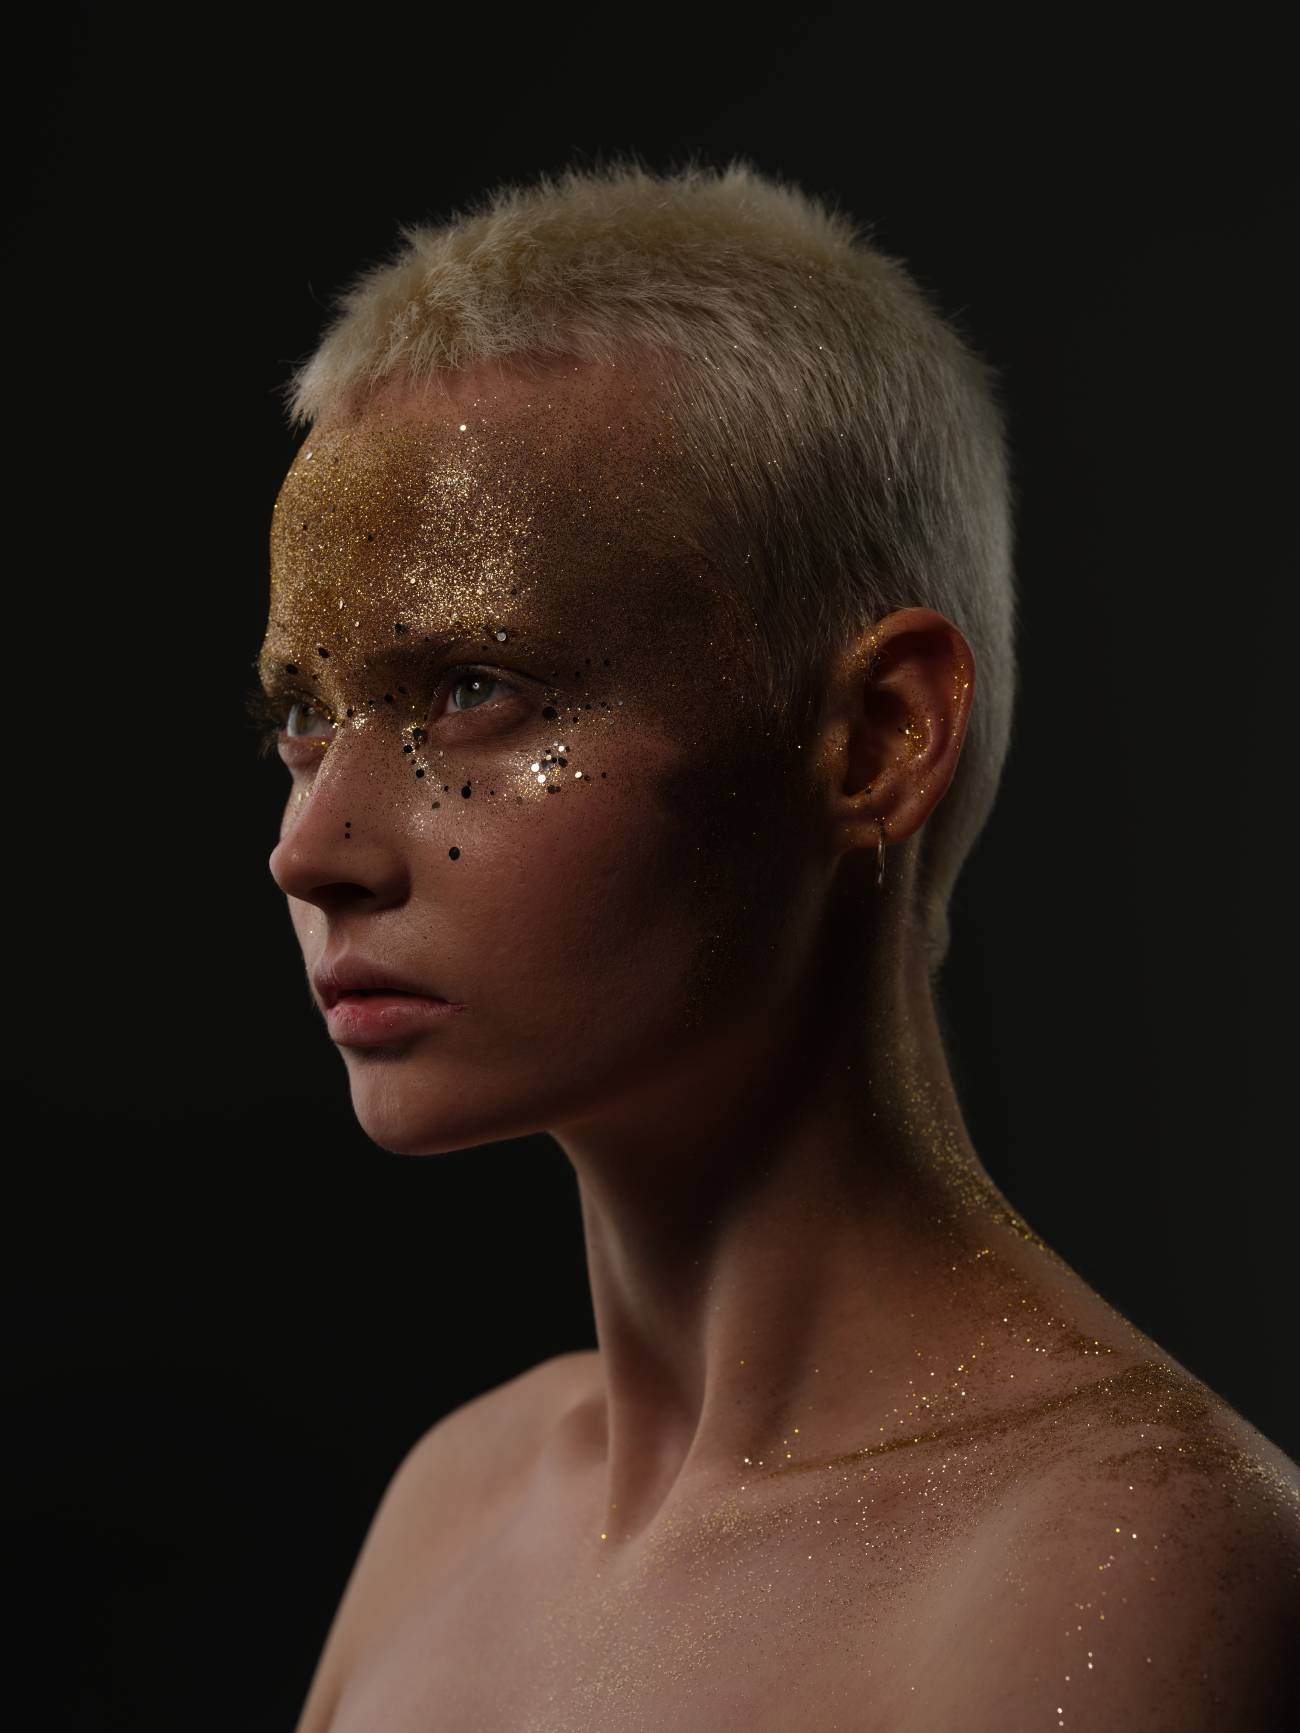 Model with short blonde hair looking upwards, her forehead covered with gold glitter – photographed with the Fujifilm GFX100